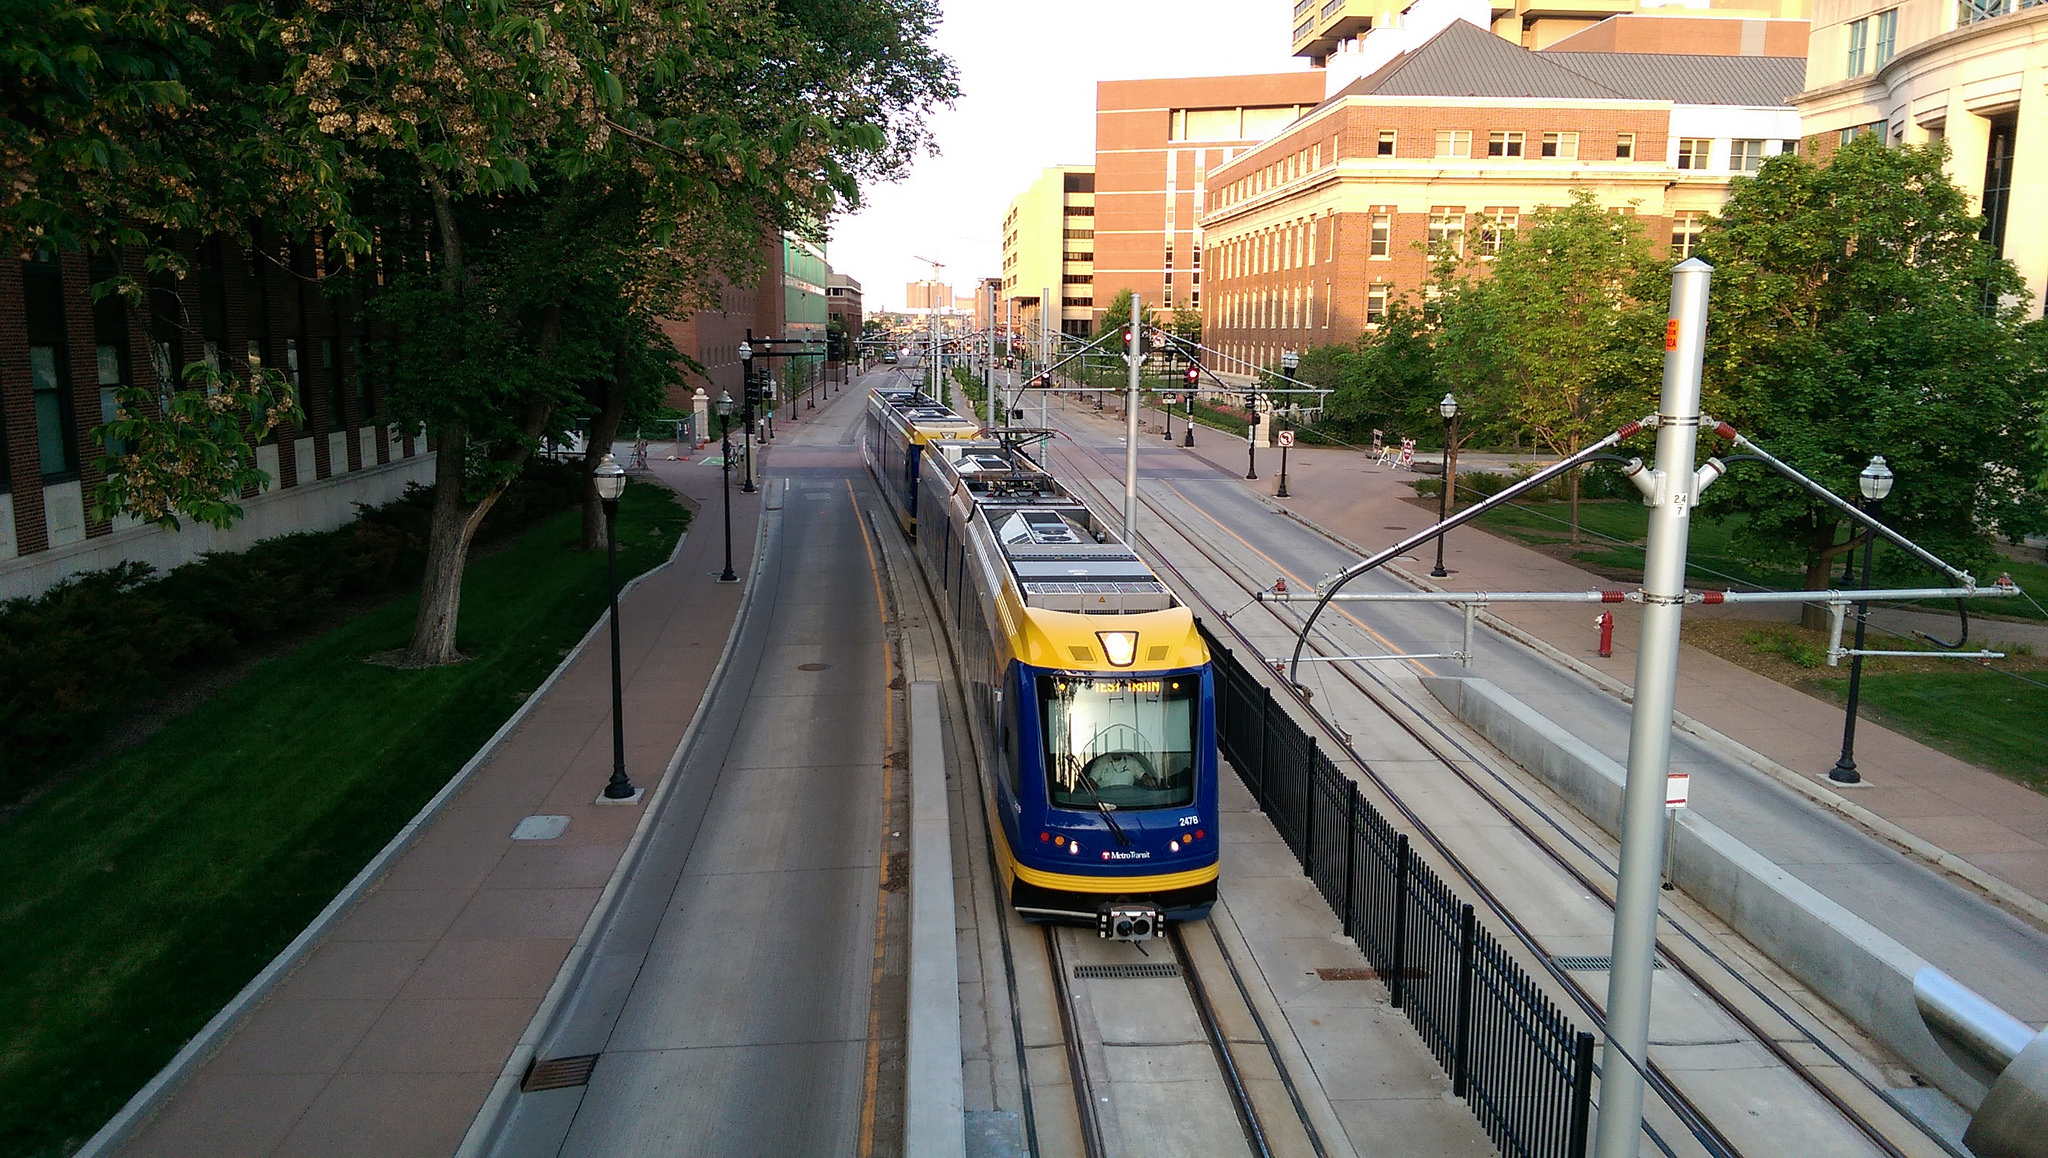 A Green Line train during testing earlier this year. Photo by Michael Green via Flickr creative commons.